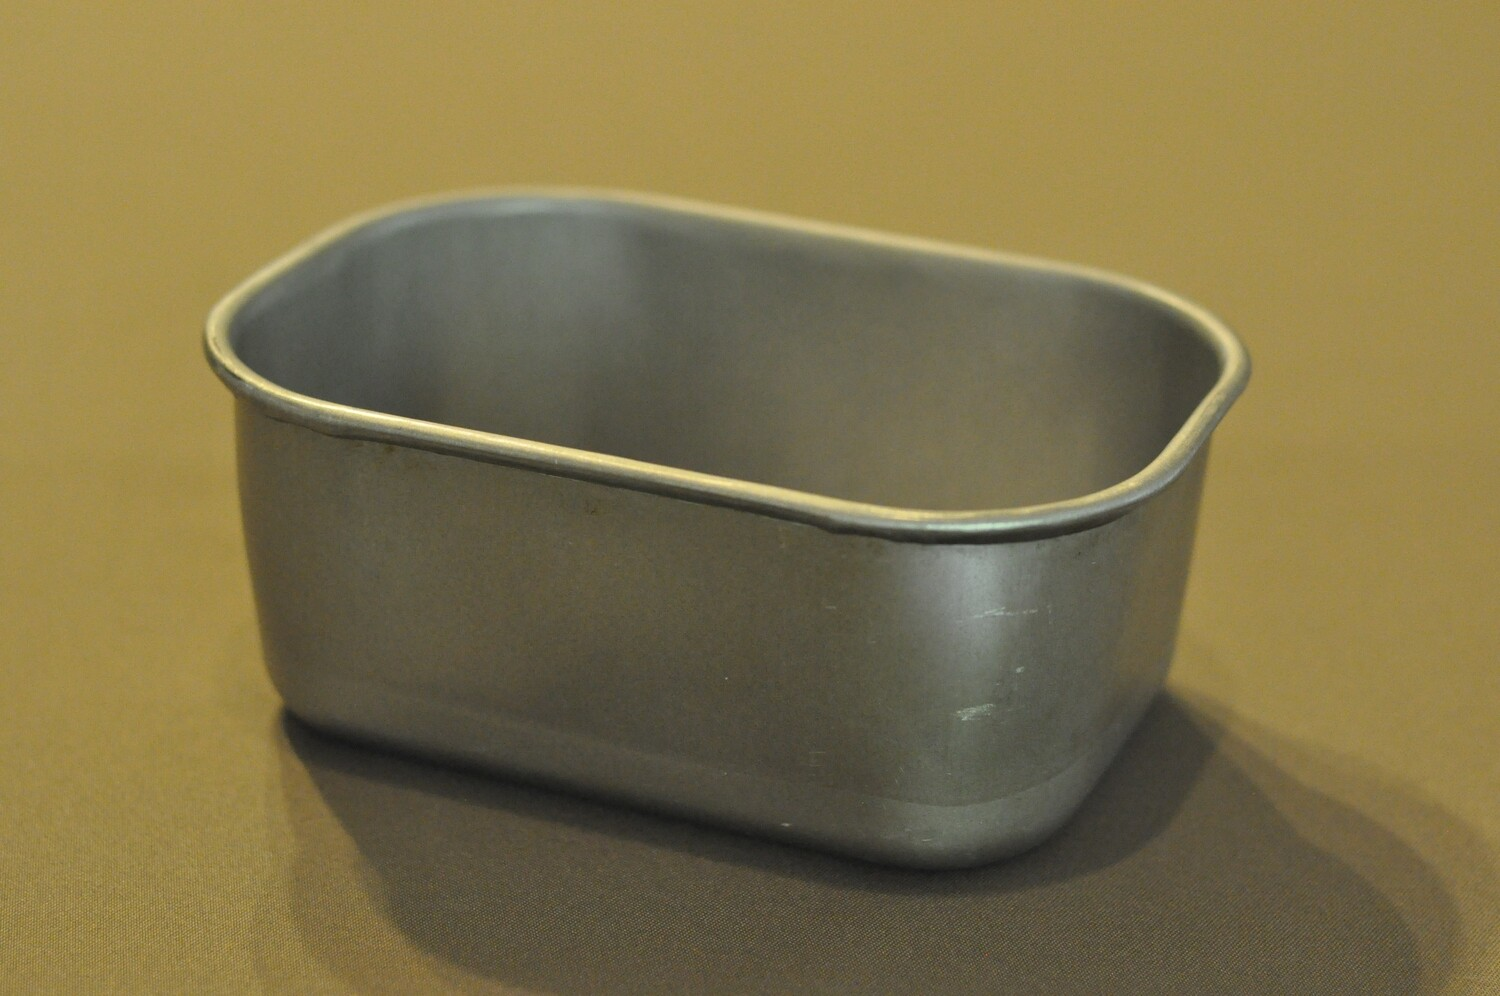 BACK SOON! OMG Bread Tin - Commercial Grade metal Bread Tin that will last a life time.